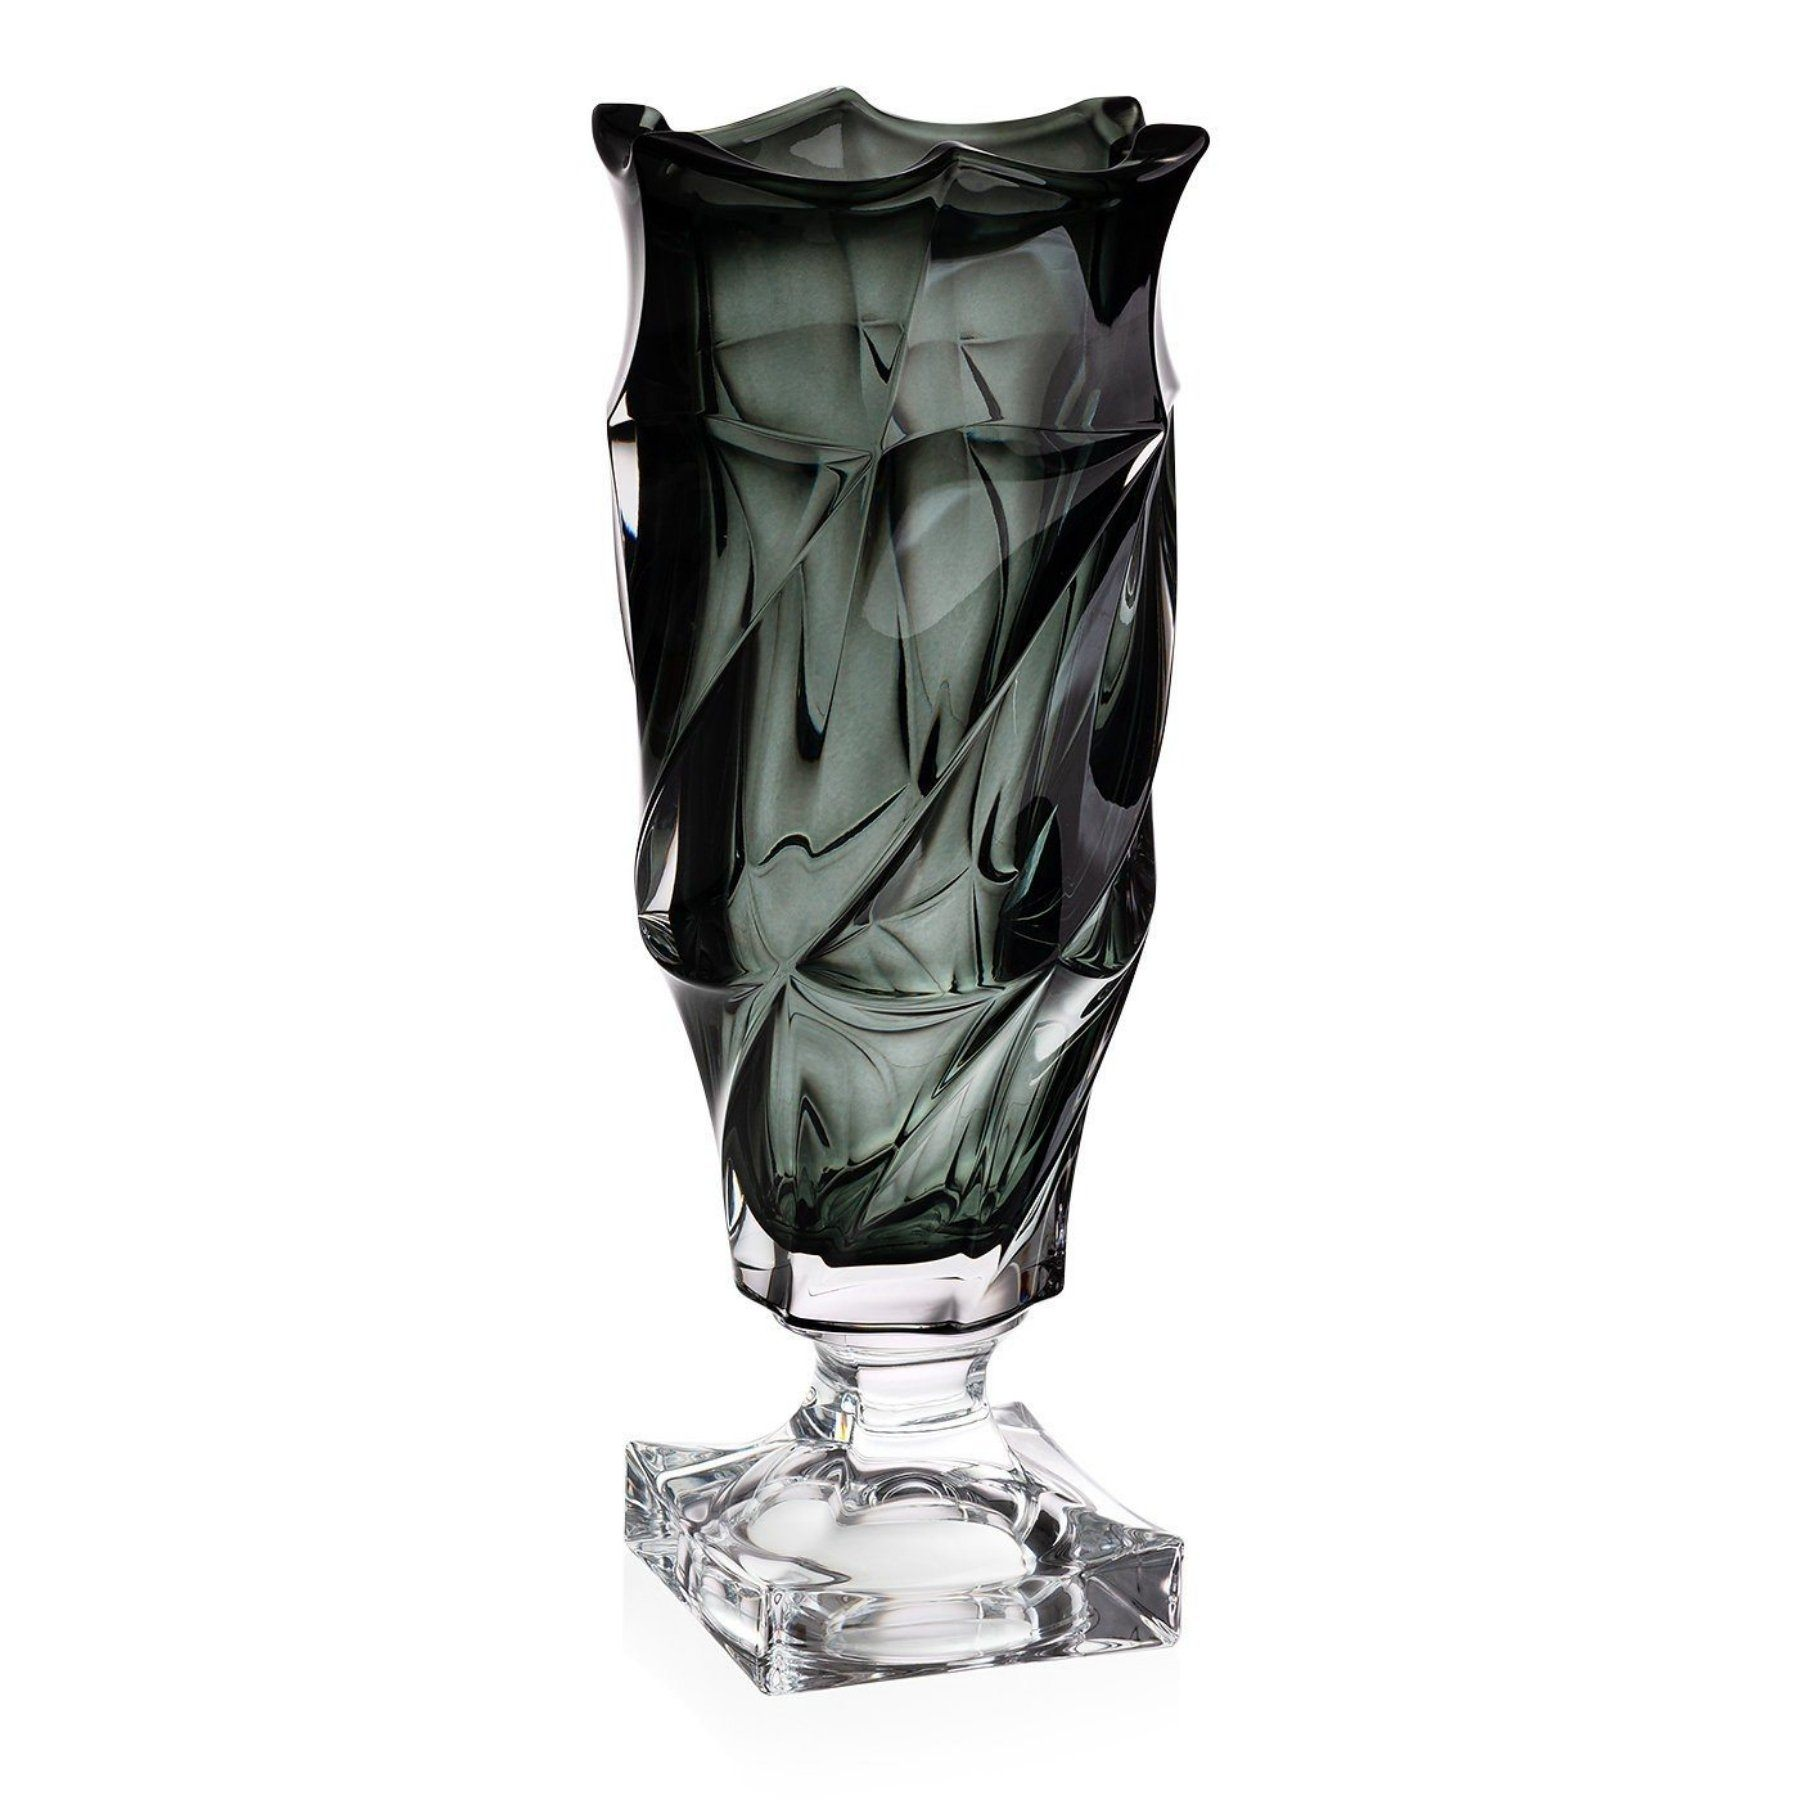 'Flamenco' Footed Crystal Vase - Grey